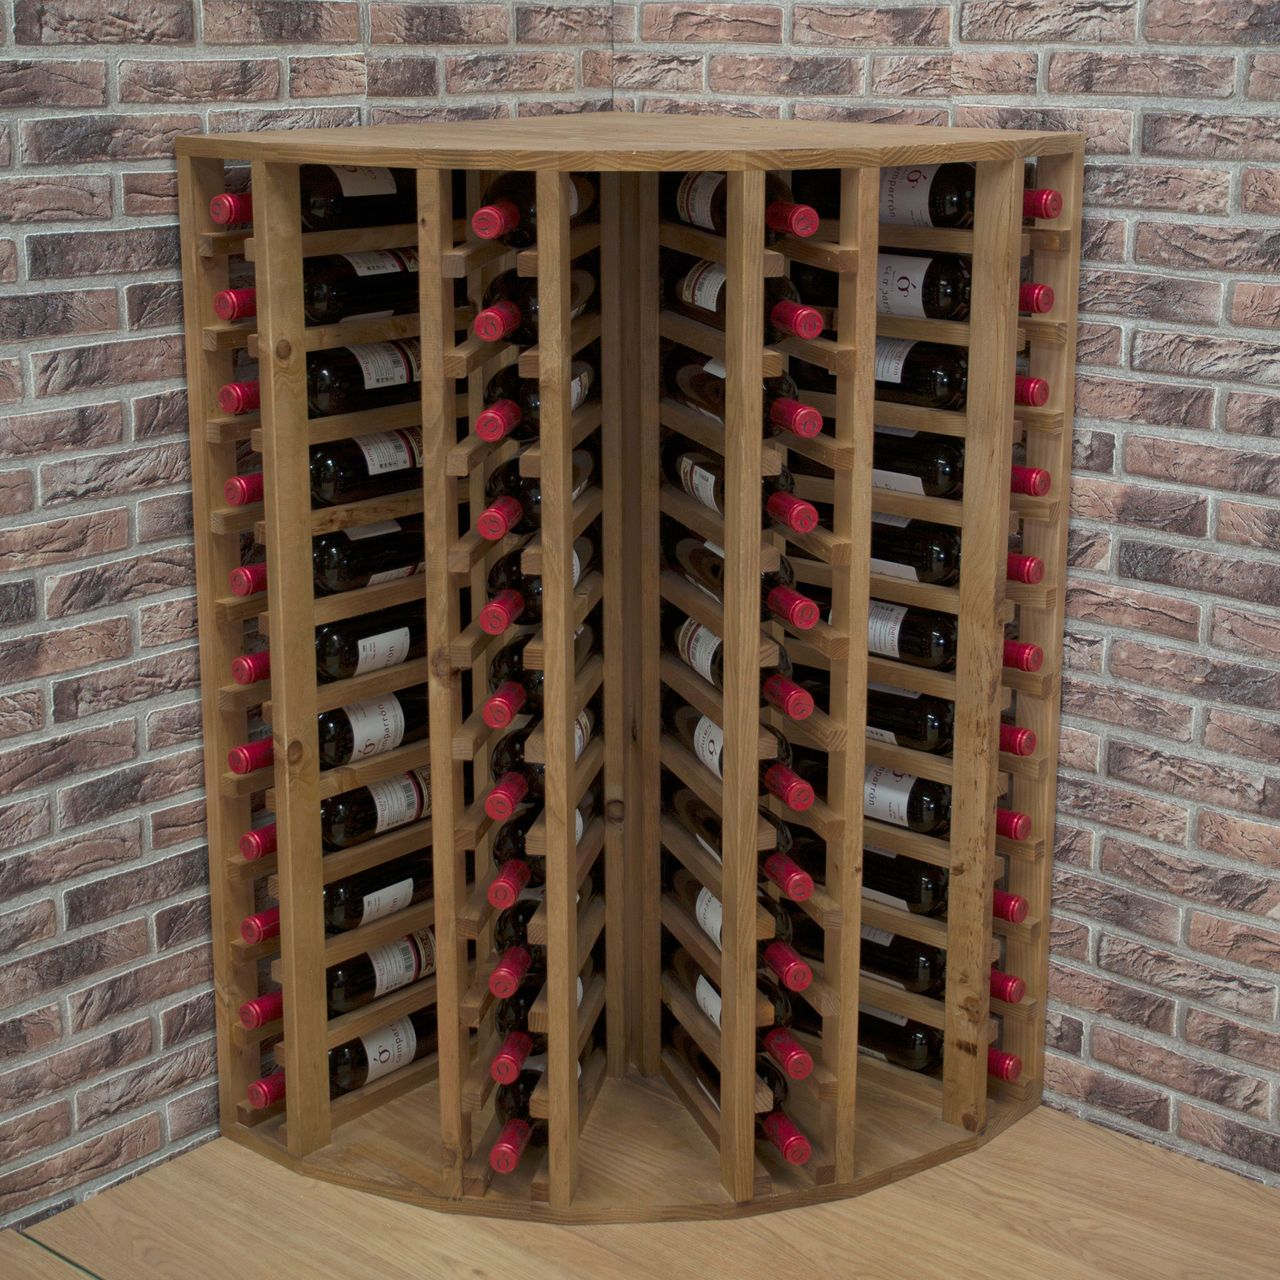 Weinregal Holz Selber Bauen Holz Weinregal Gallery Of Piano Art Form Flasche